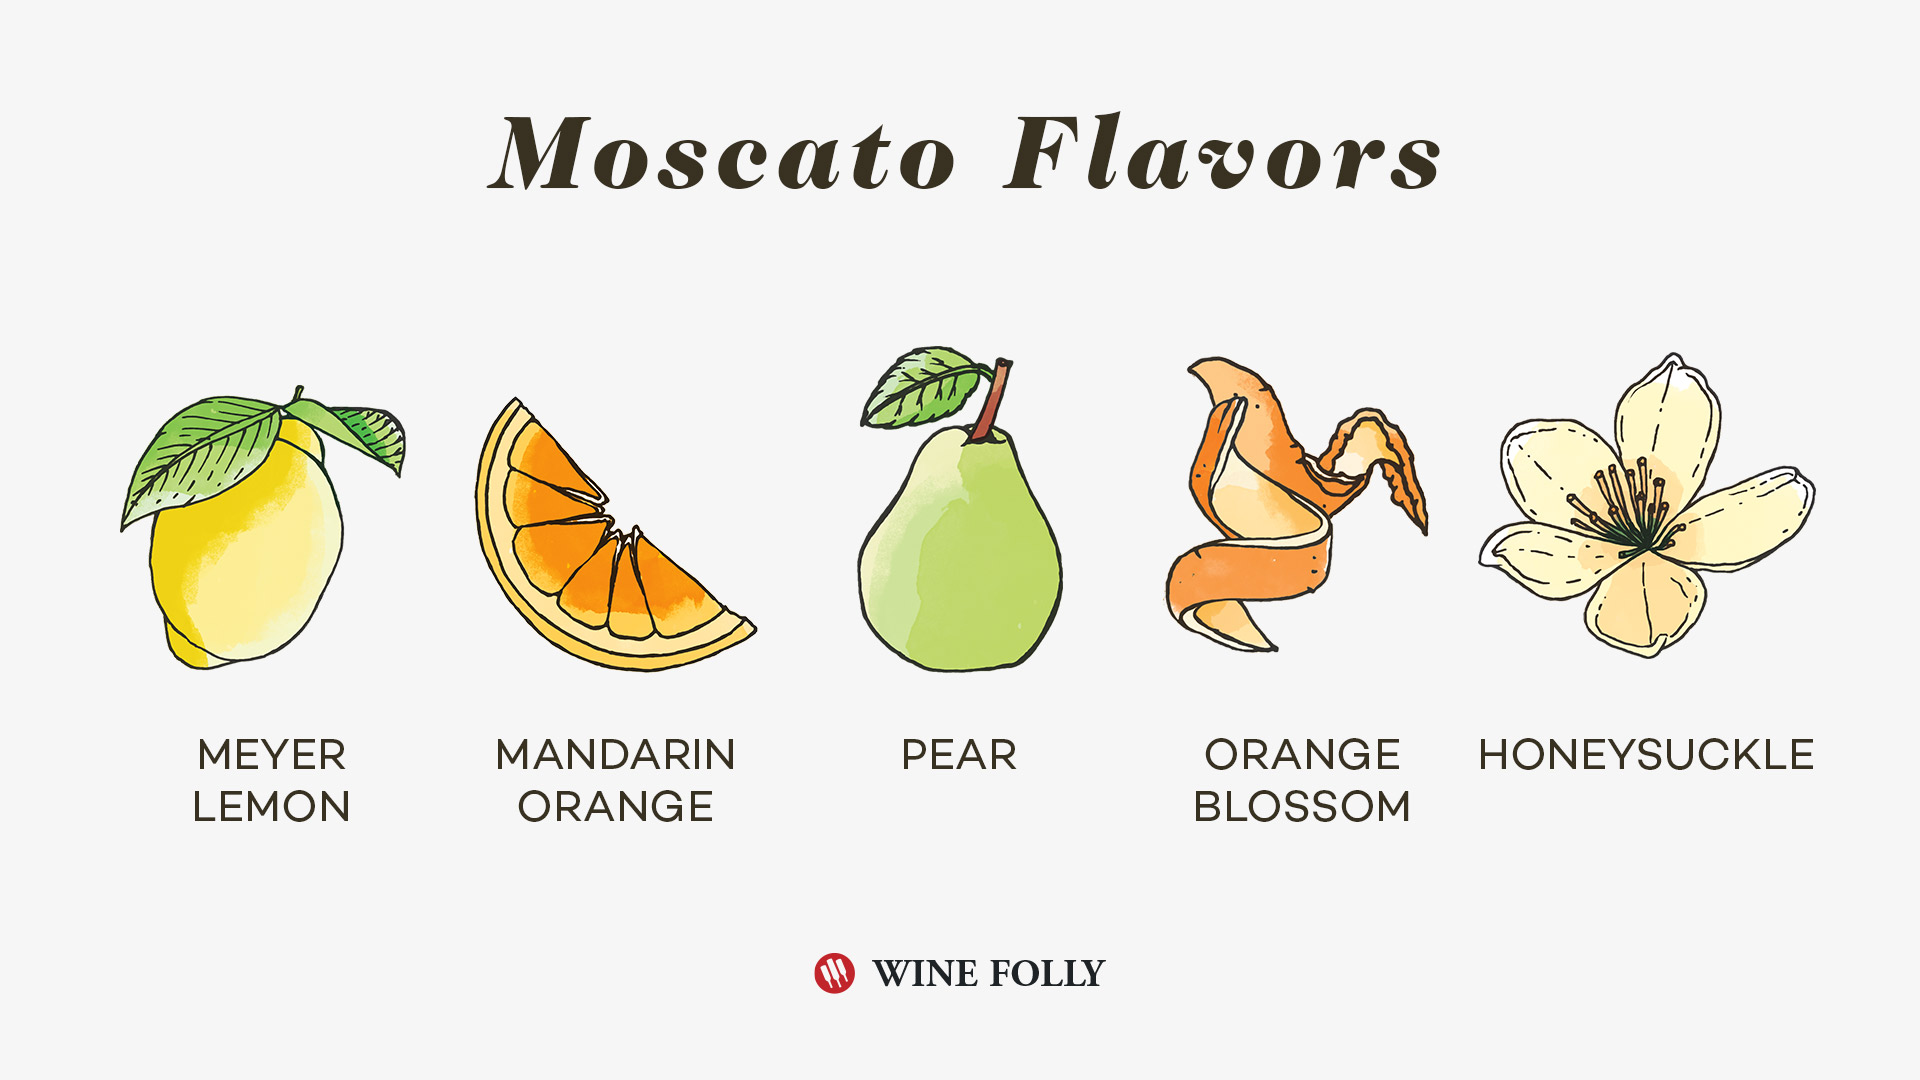 Moscato Wine Flavors by Wine Folly